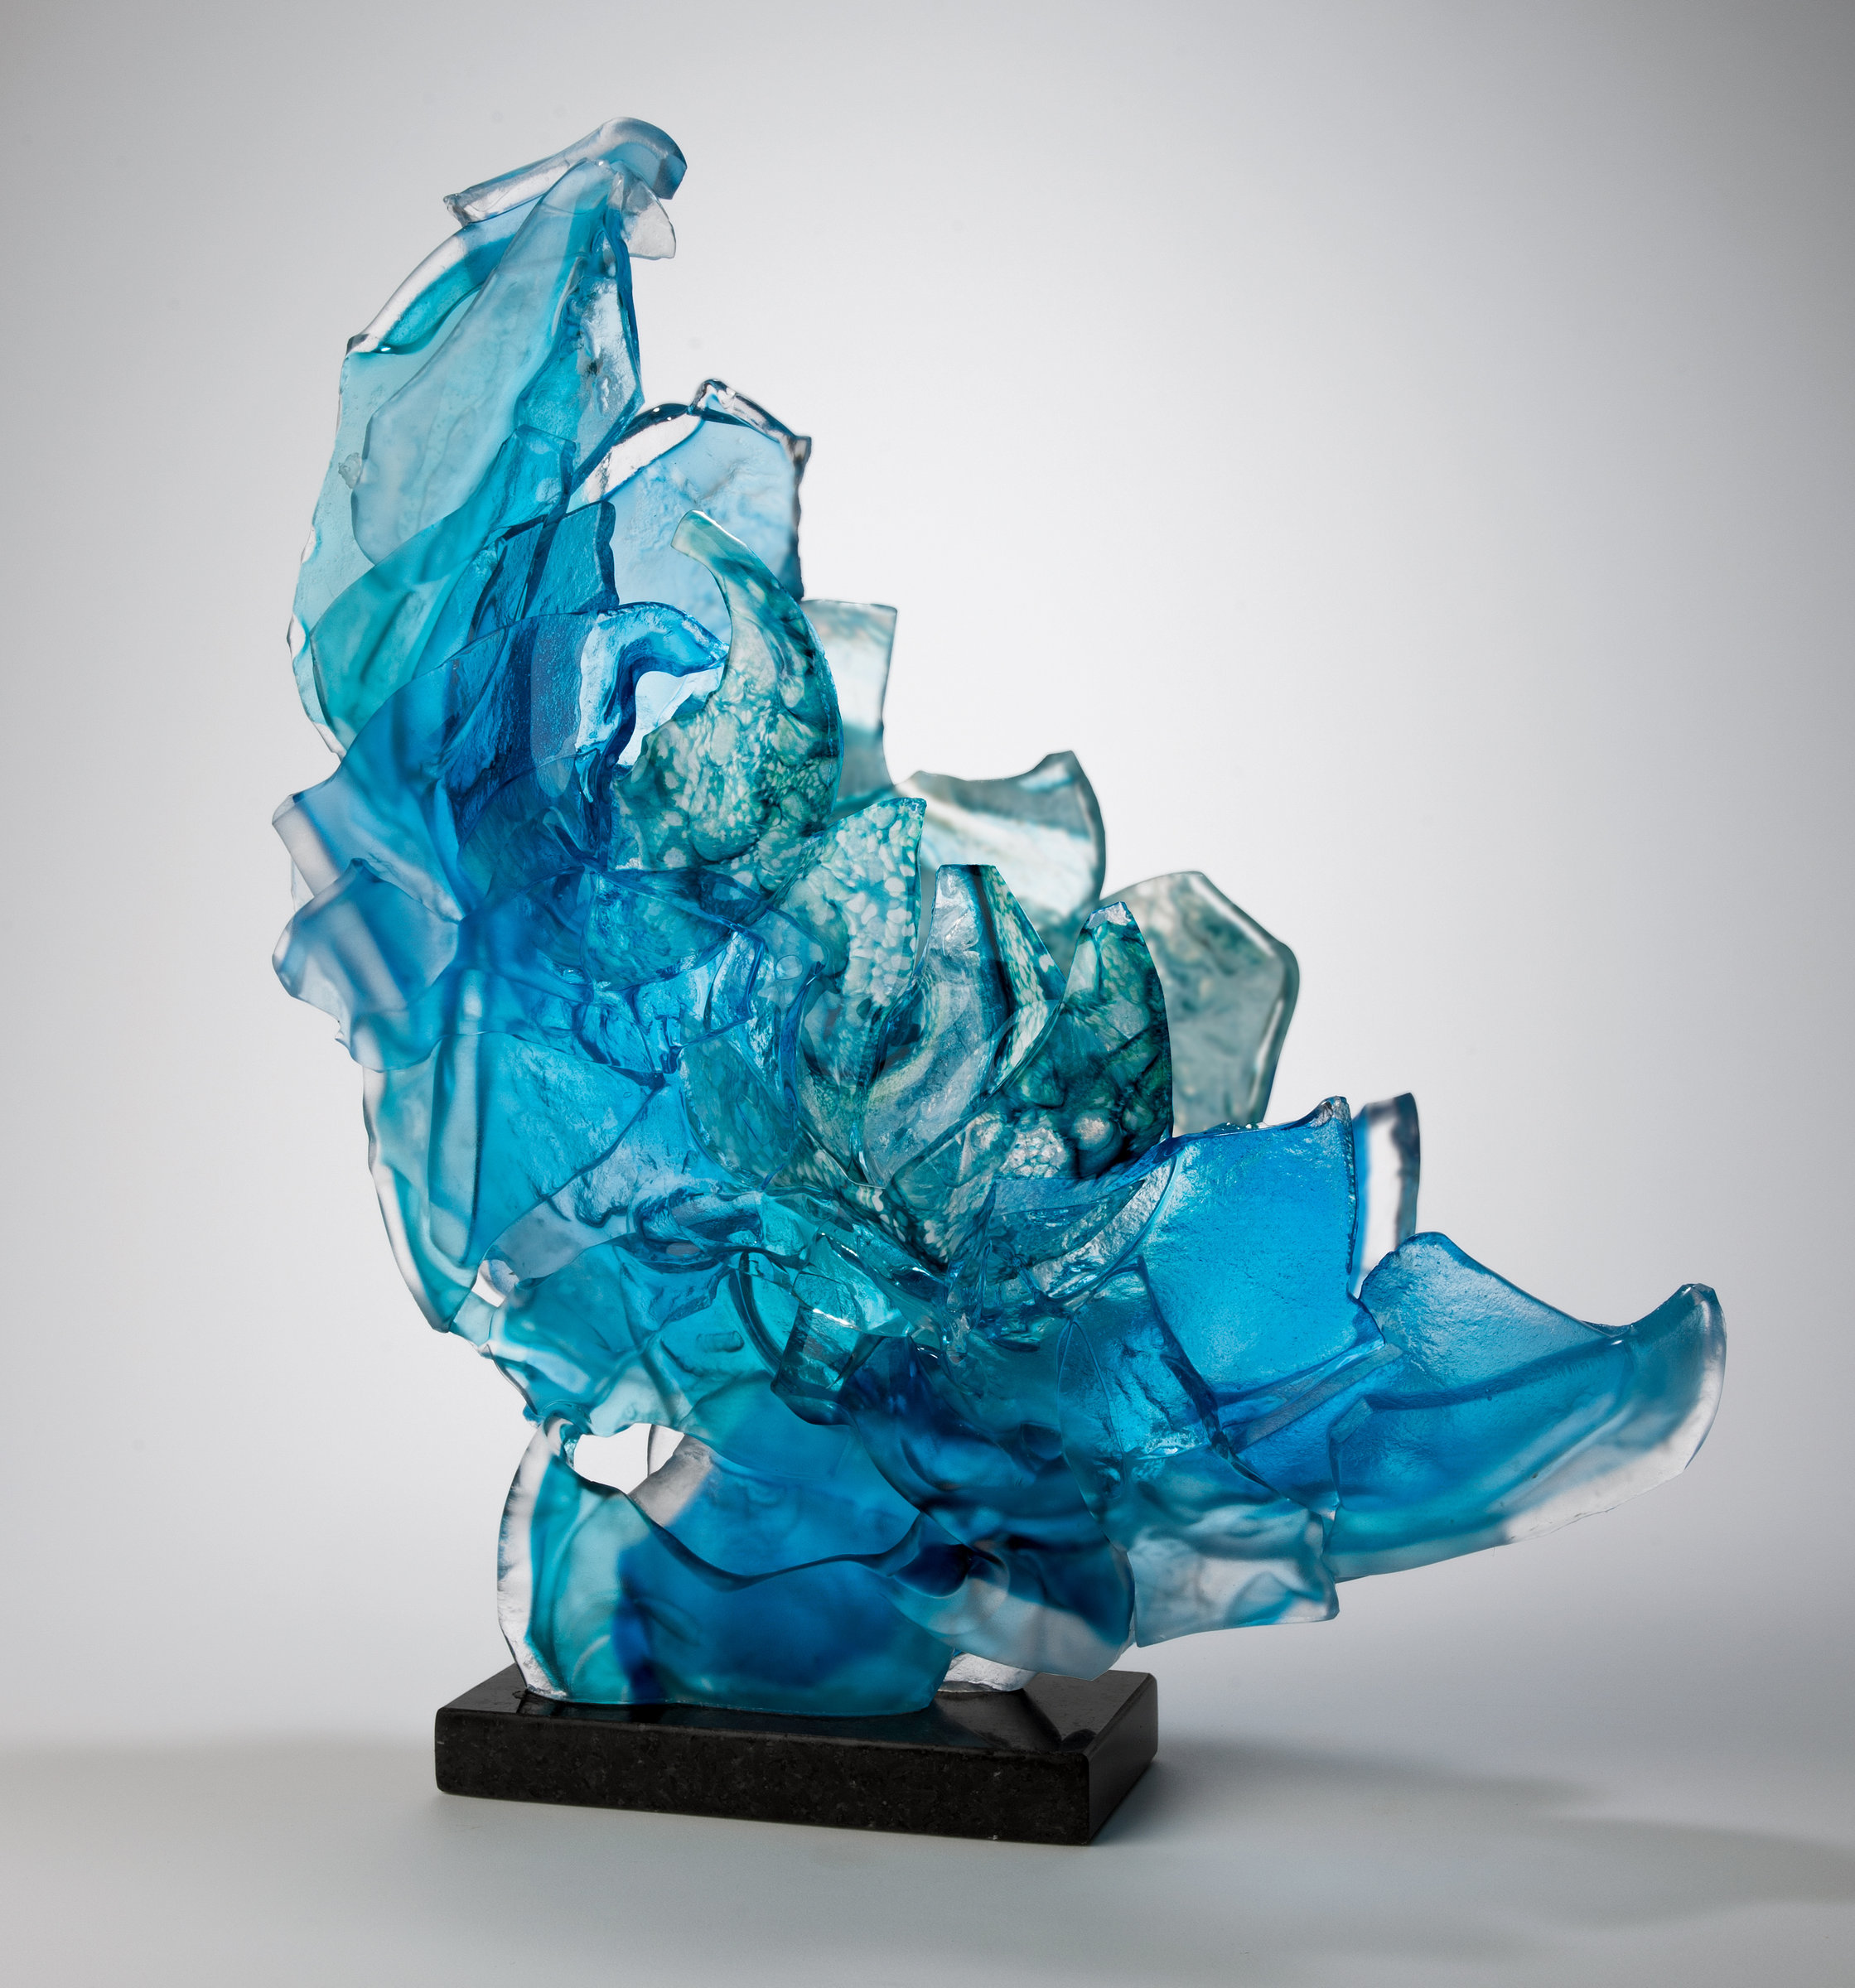 Blue Brimstone By Caleb Nichols Art Glass Sculpture